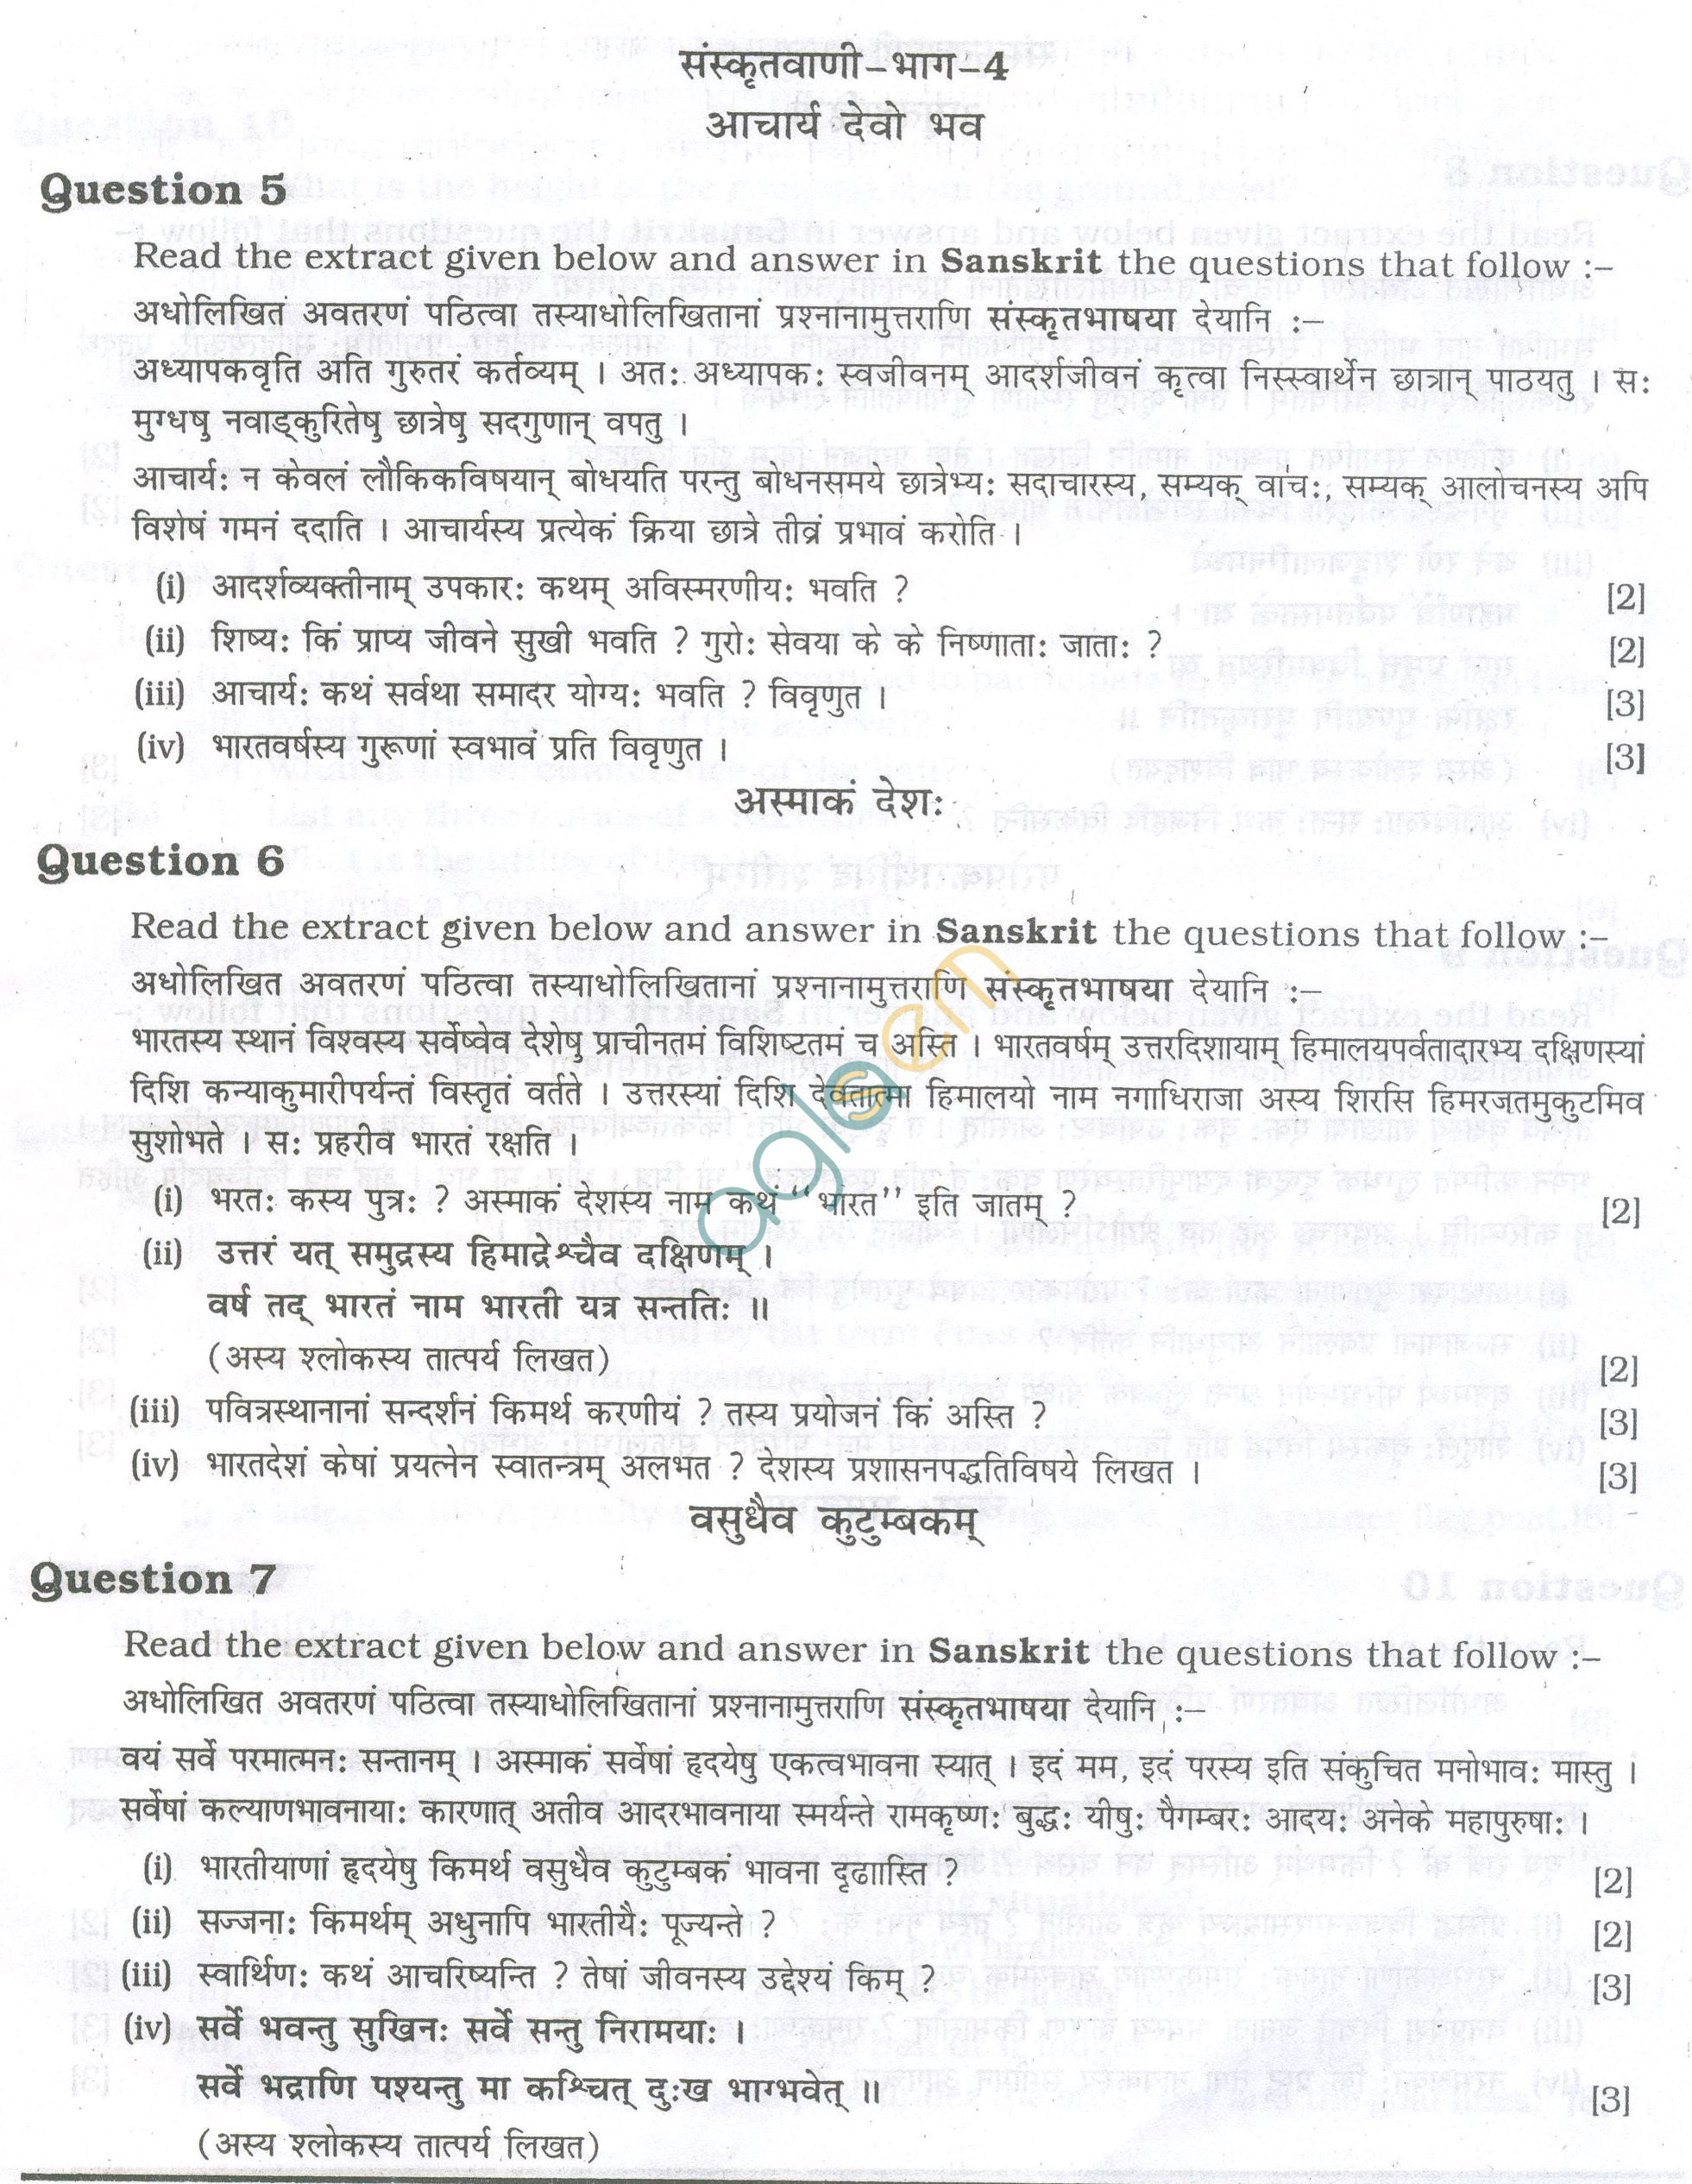 ICSE Question Papers 2013 for Class 10 - Sanskrit